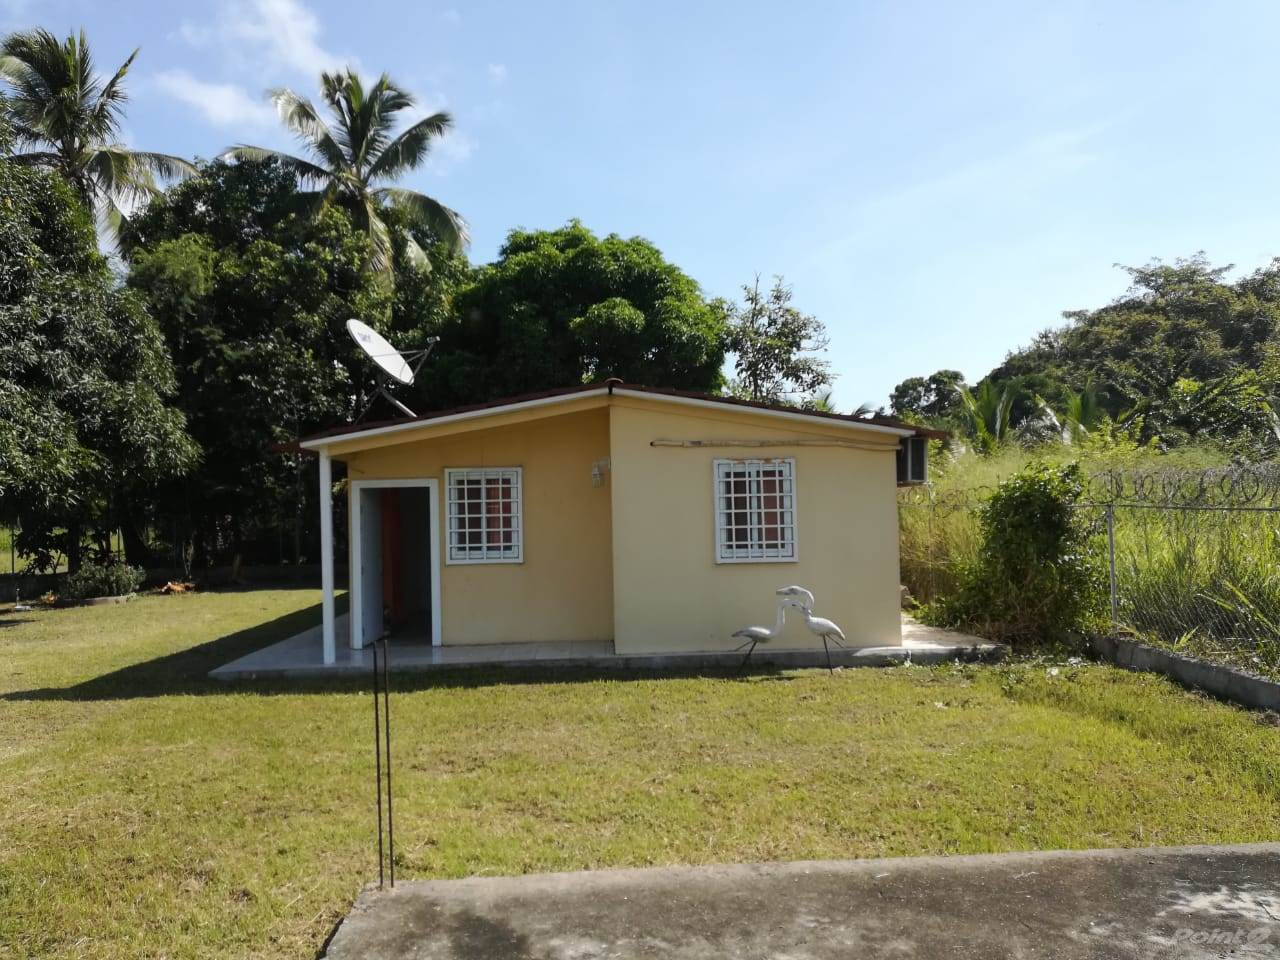 Residential For Sale in Playa Nueva Gorgona, Chame, Panamá   , Panama